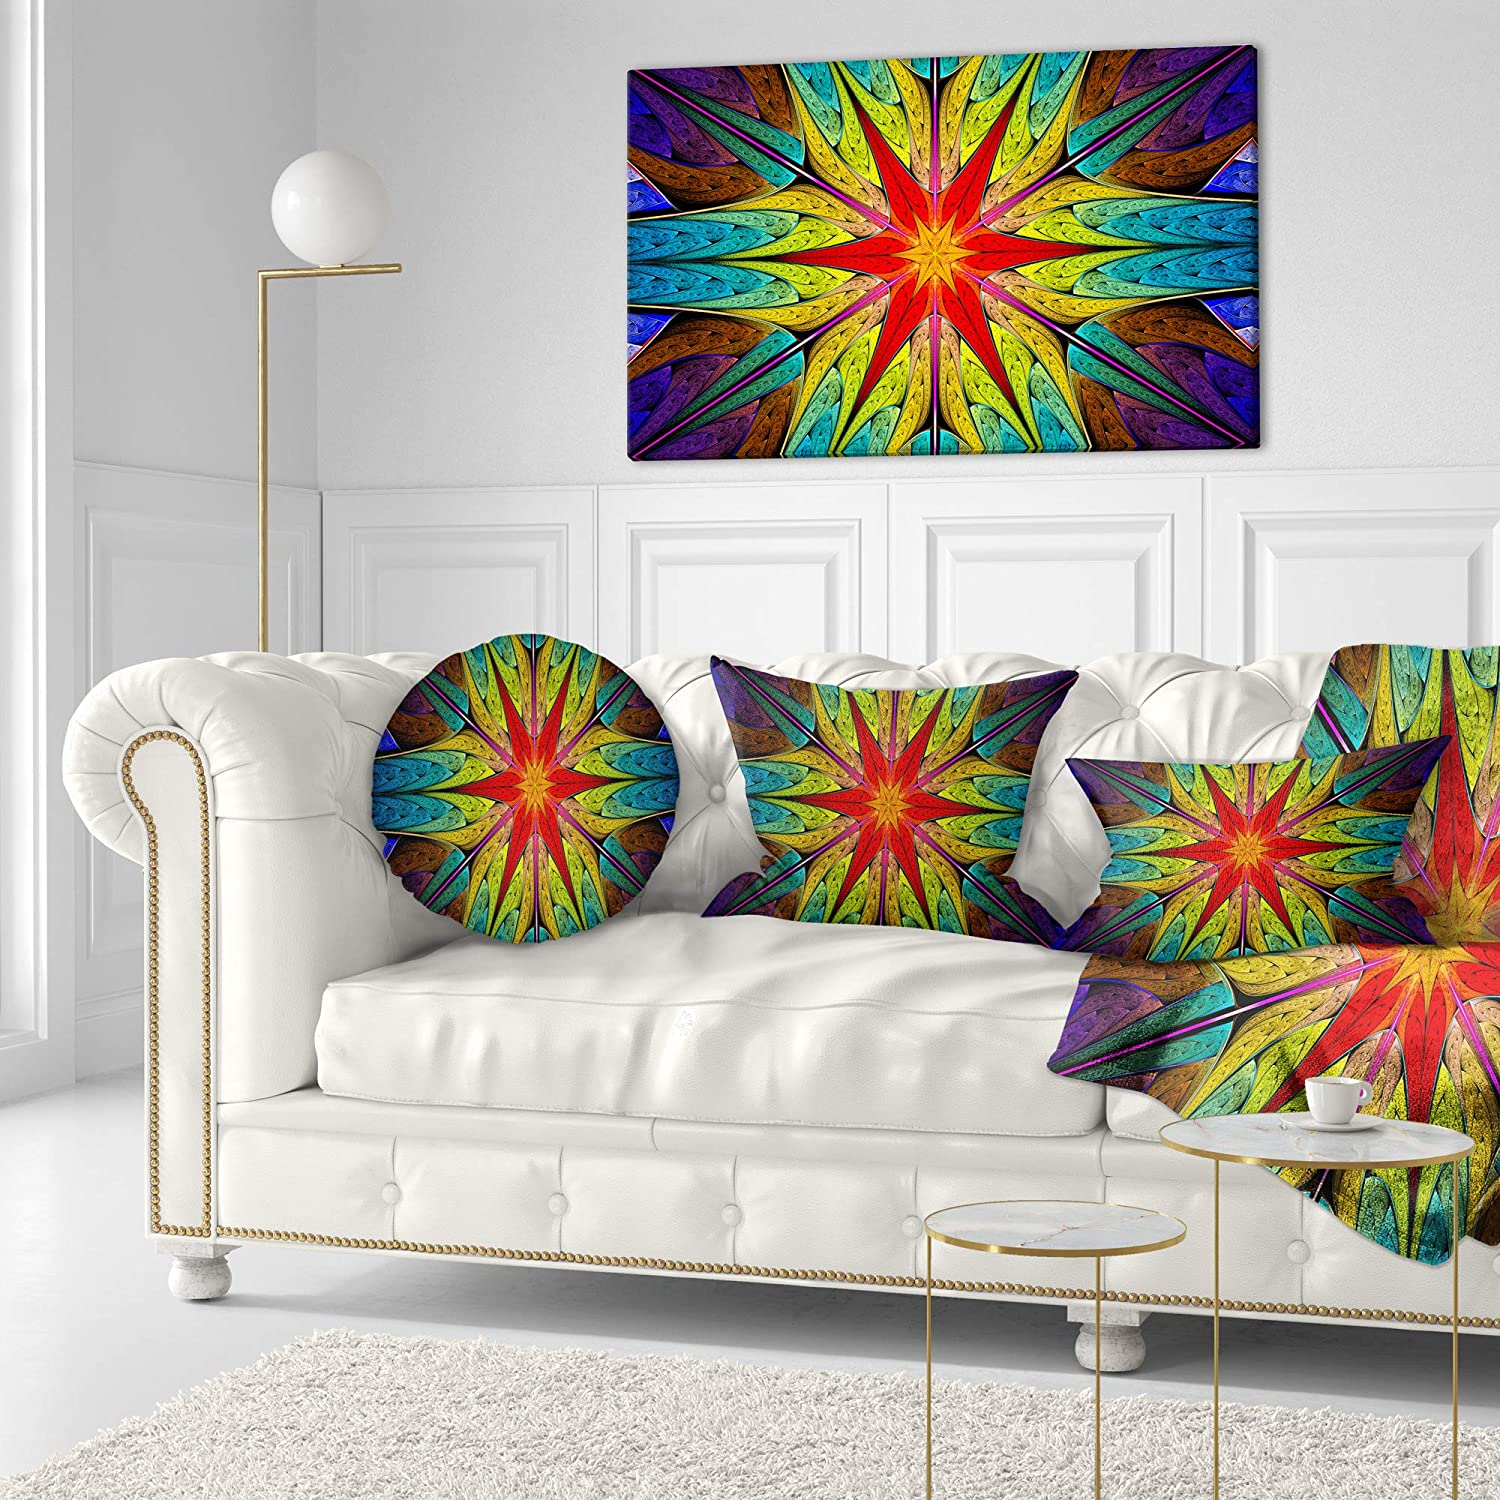 Insert Printed on Both Side Designart CU15857-20-20-C Stained Glass with Bright Red Star Abstract Round Cushion Cover for Living Room Sofa Throw Pillow 20 Inches